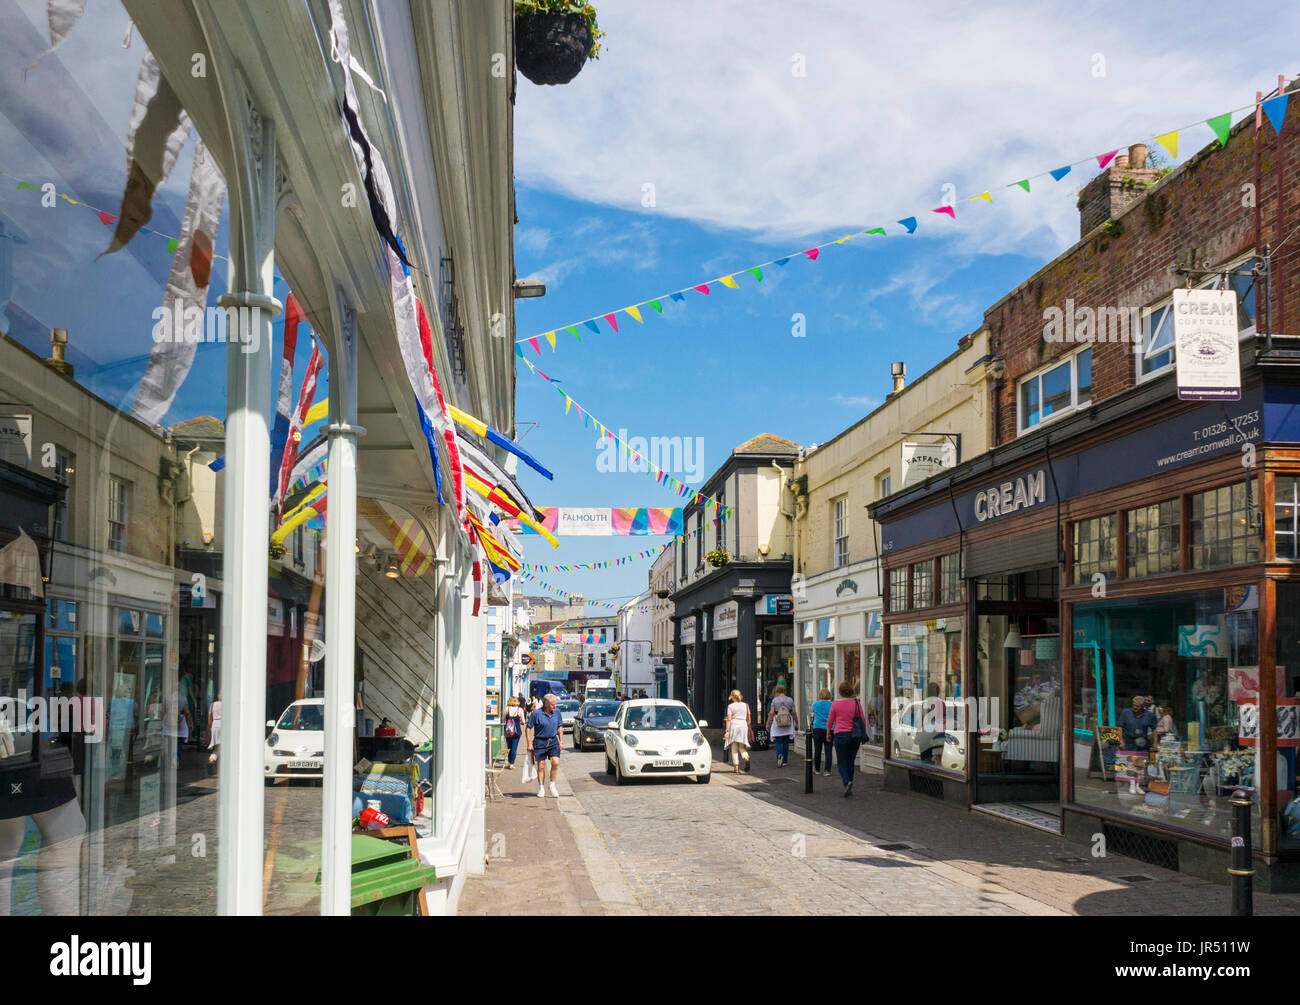 Falmouth Cornwall UK, town centre high street with shops - Stock Image